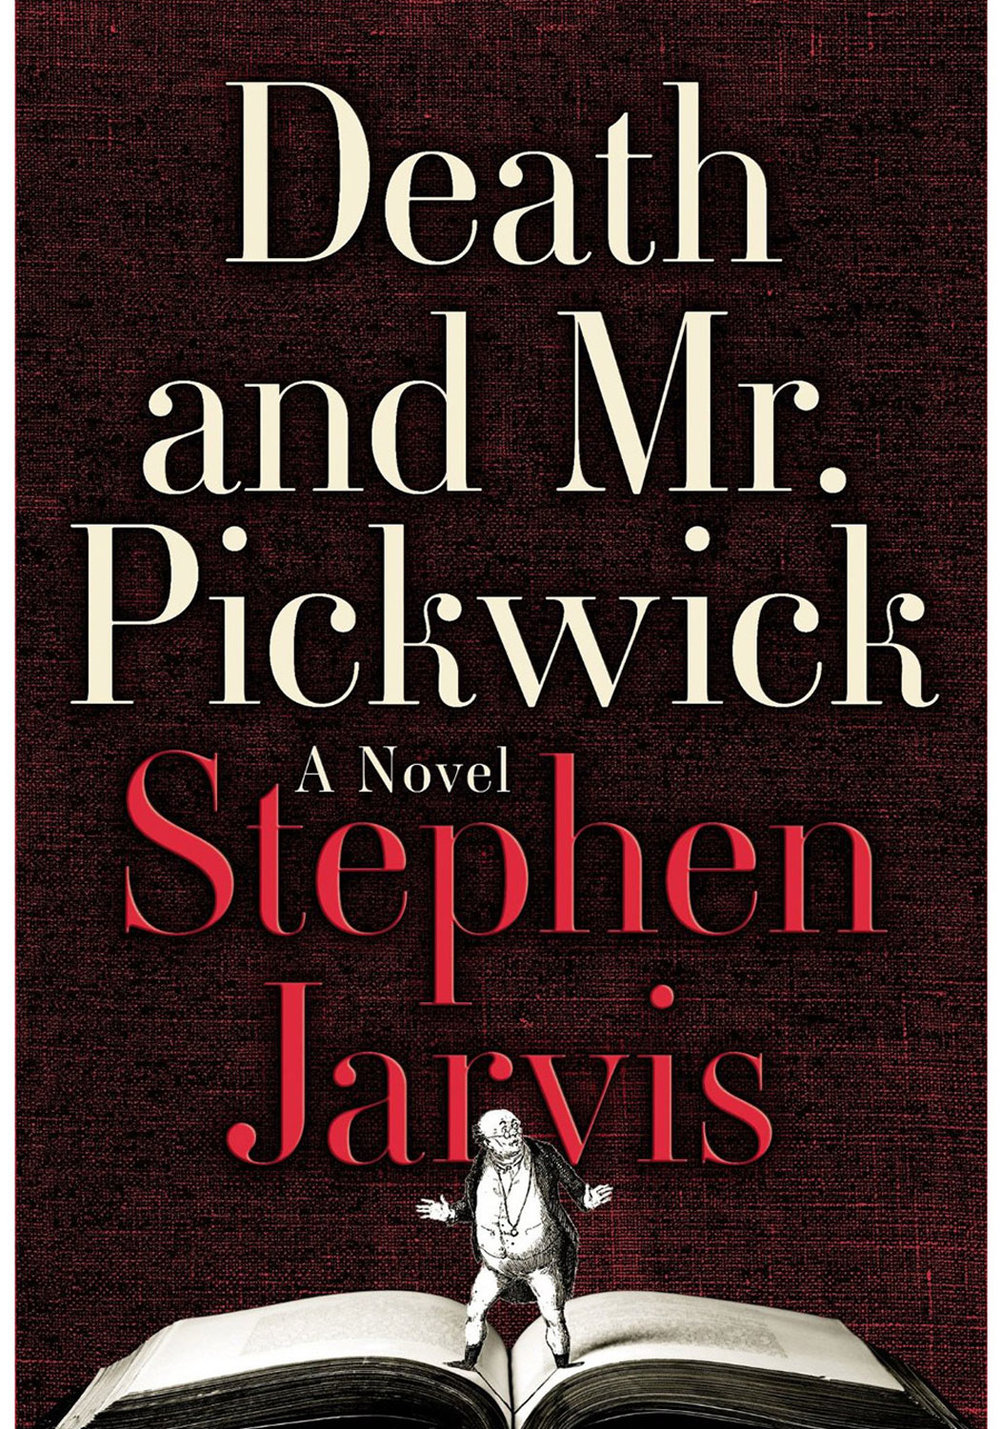 death-and-mr-pickwick-2.jpg